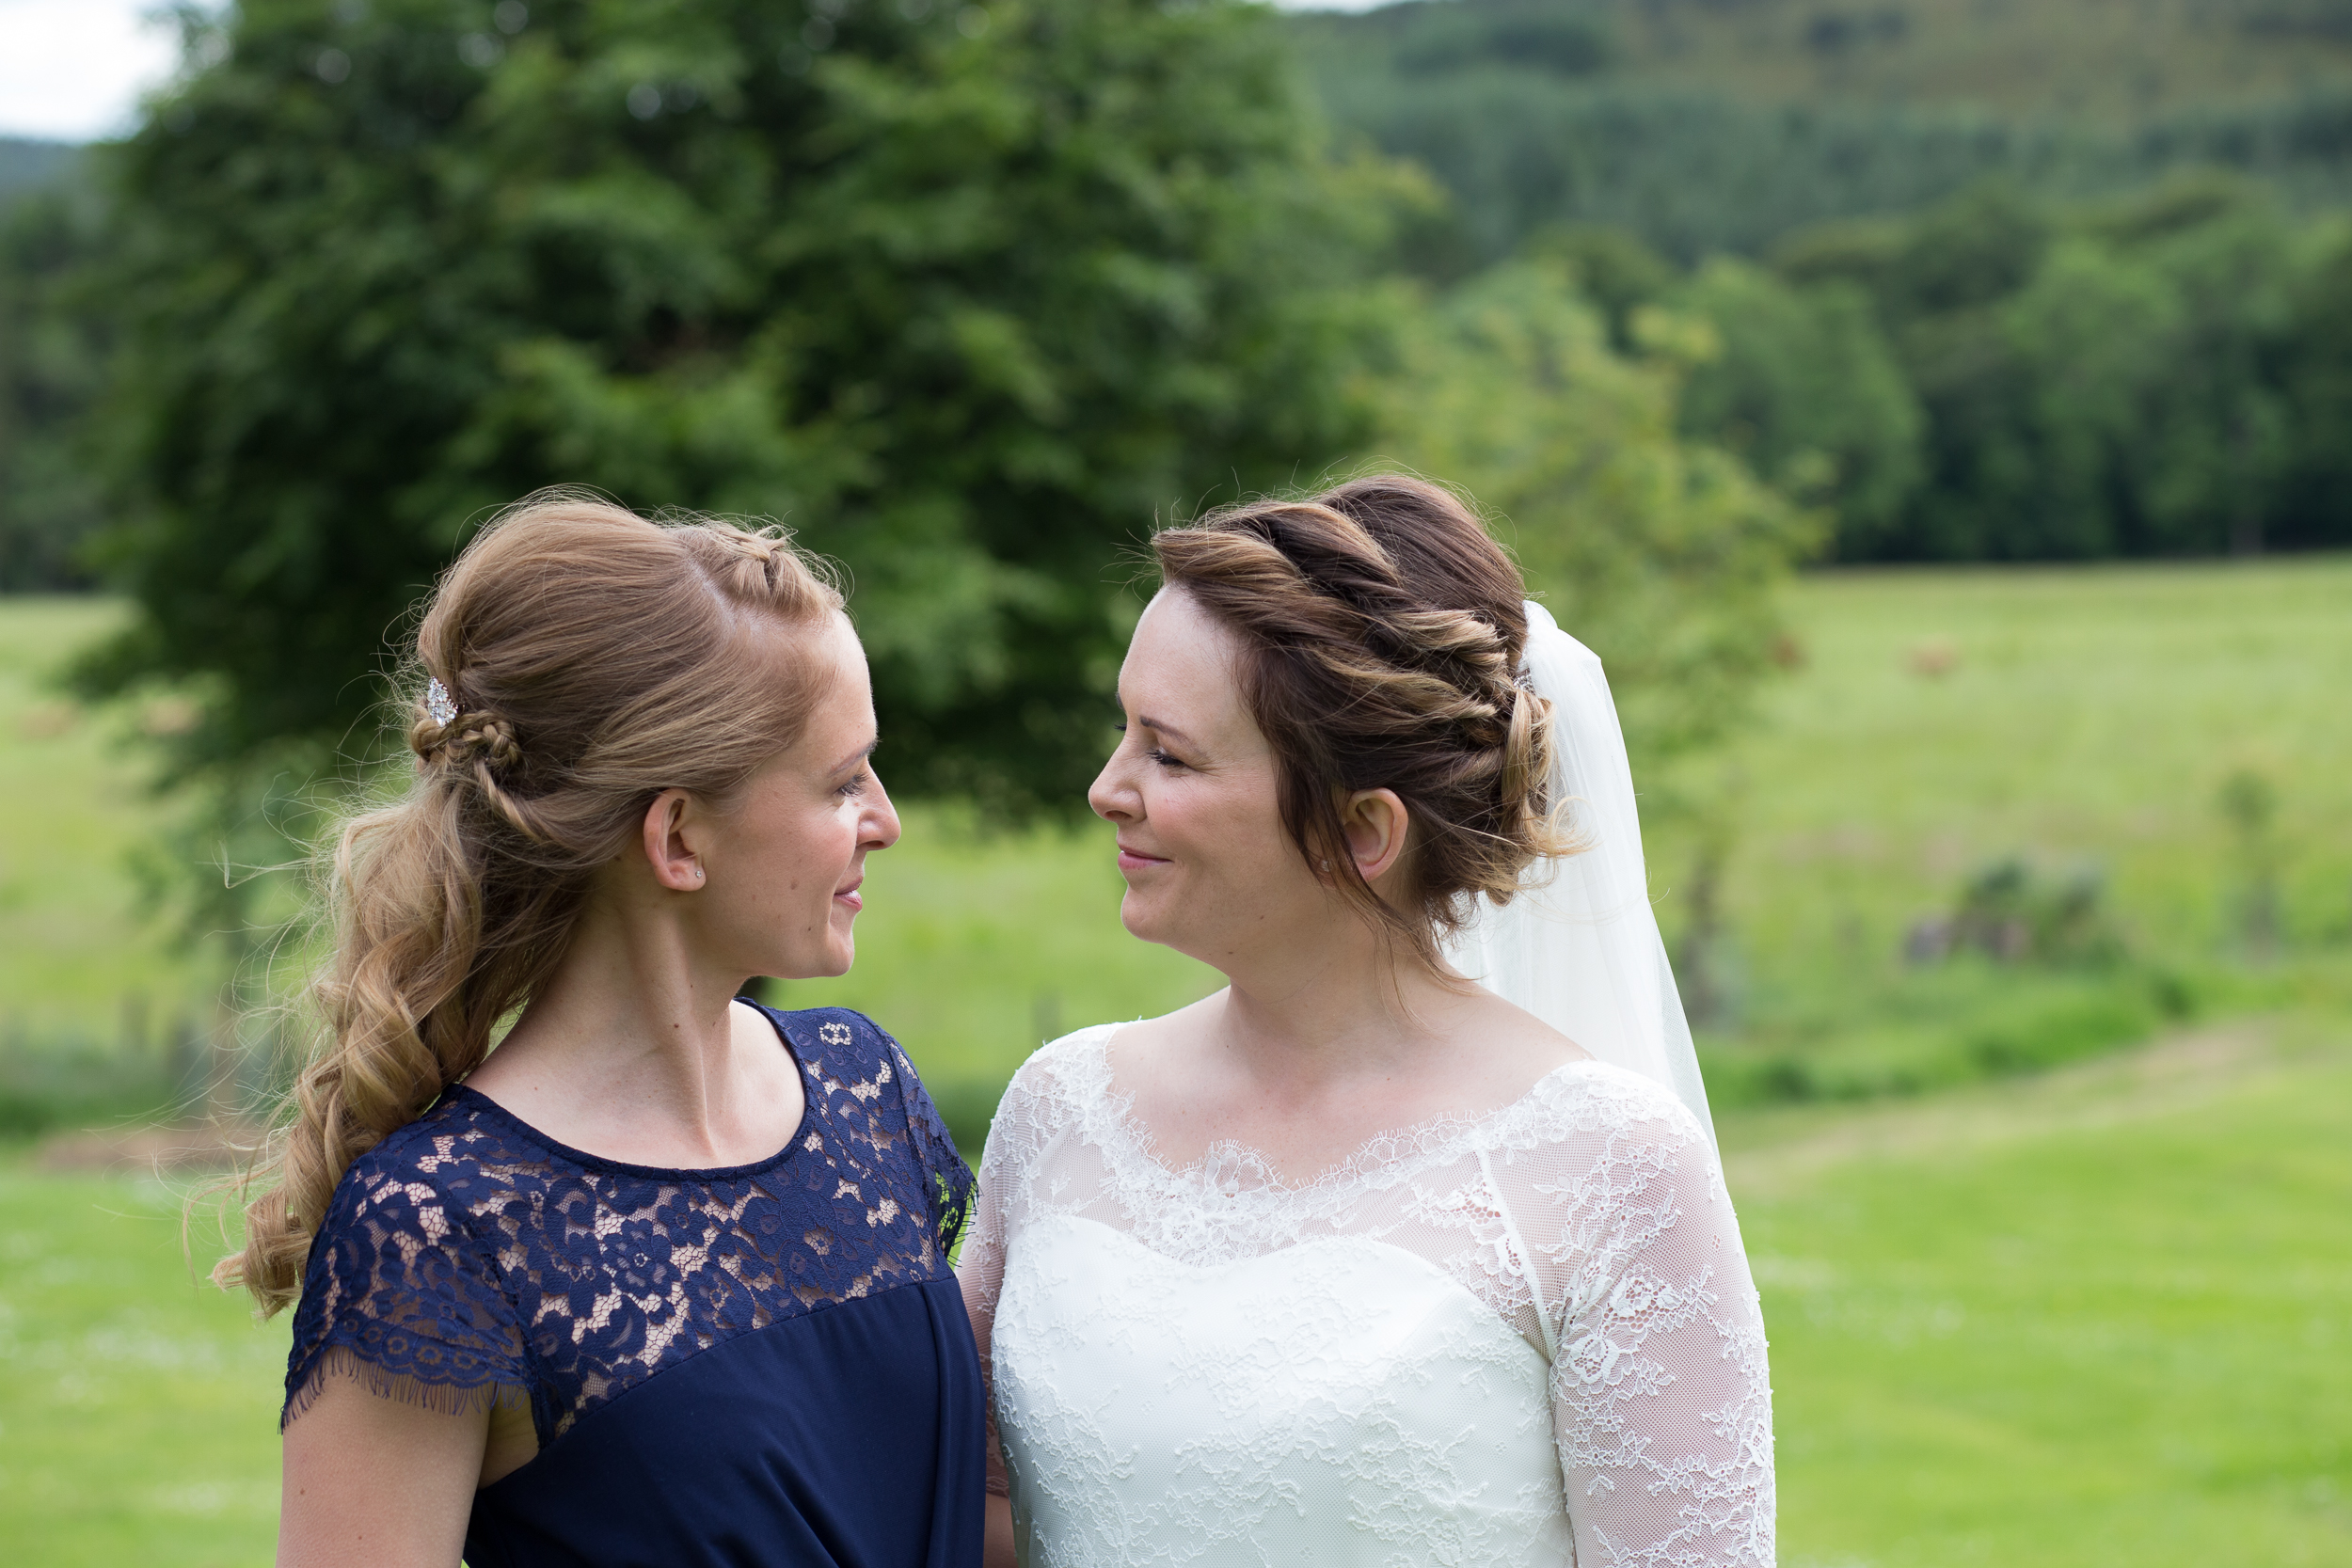 pittodrie house wedding, wedding photographer Aberdeenshire